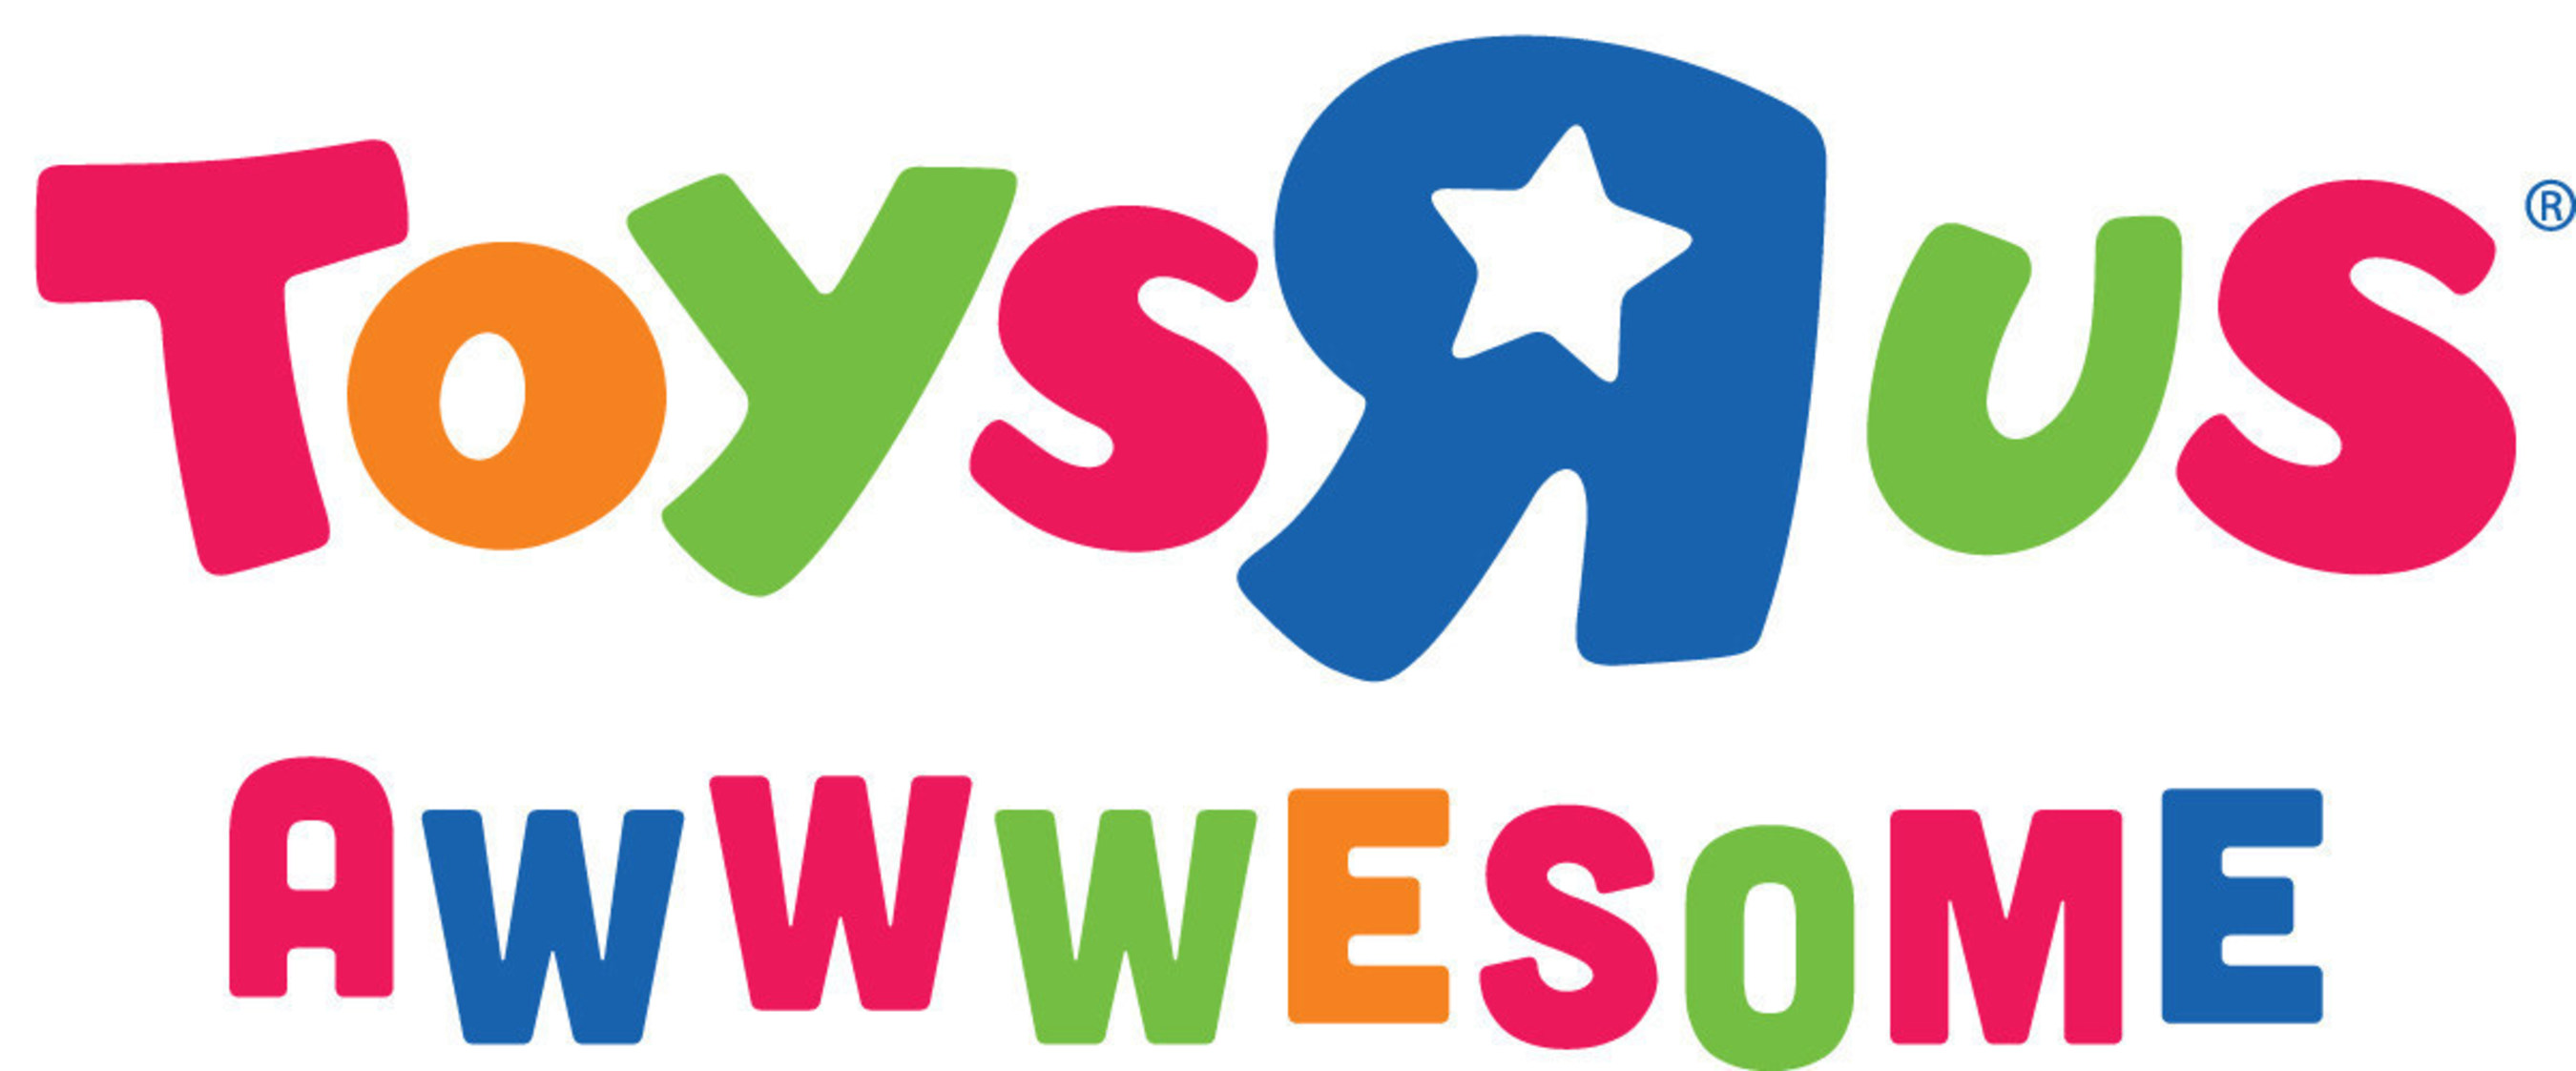 'AWWWESOME!' - Toys'R'Us' Introduces 2015 Holiday Marketing Campaign